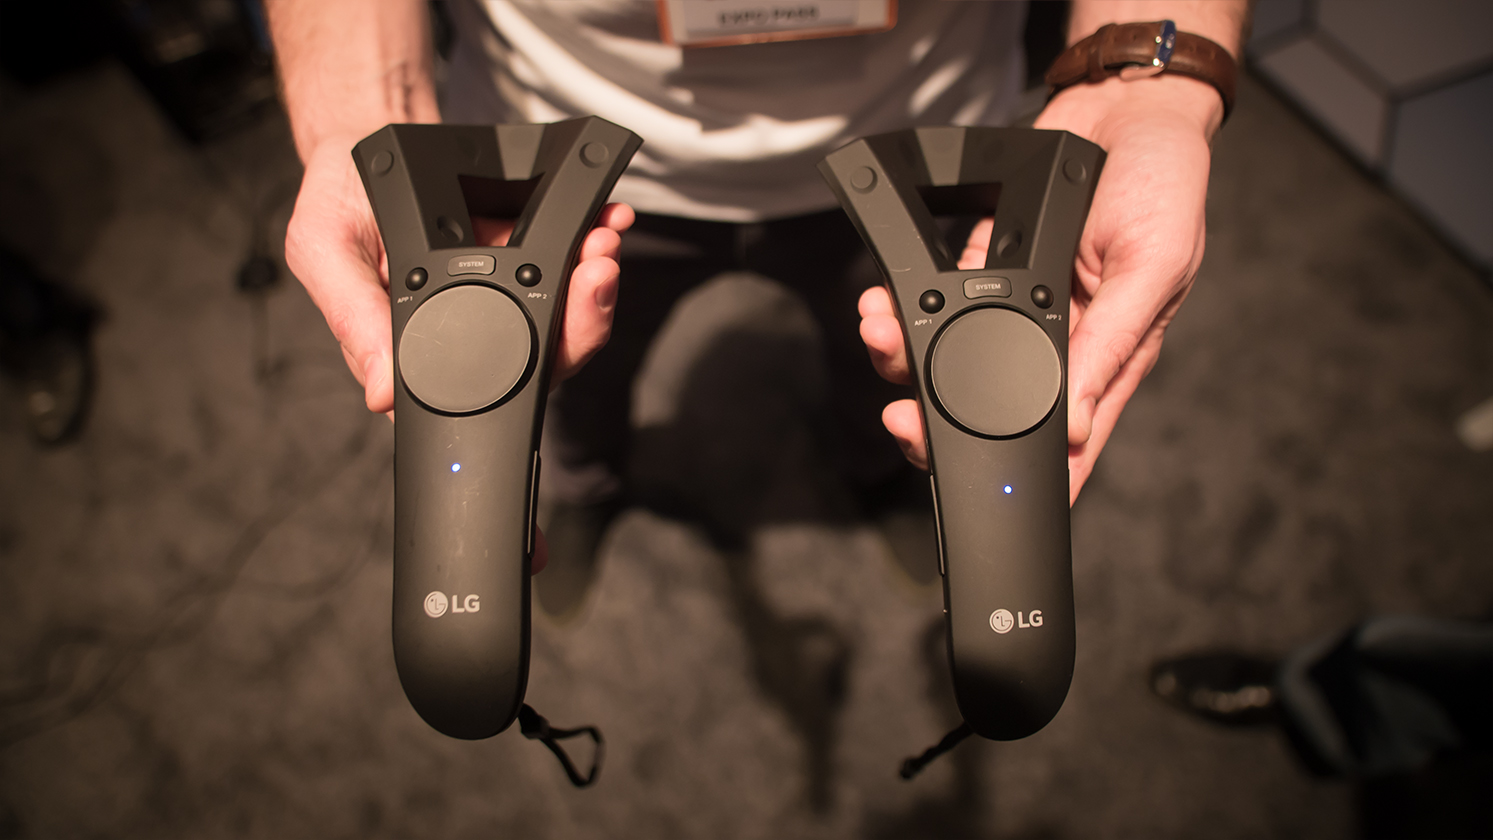 lg vr controllers